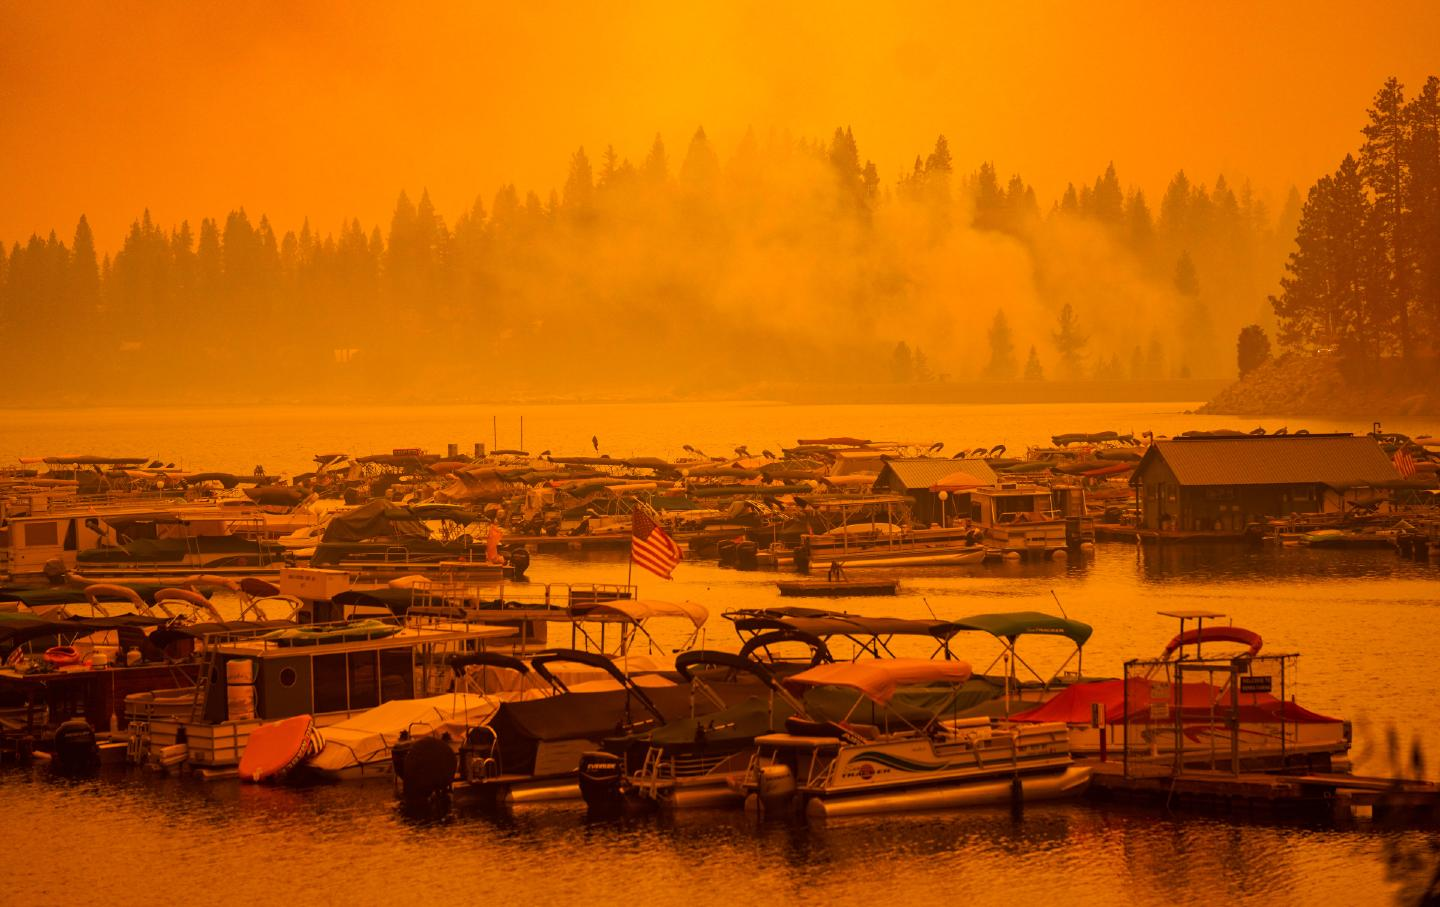 The sky is orange and smoky above the lake, where several boats are docked.